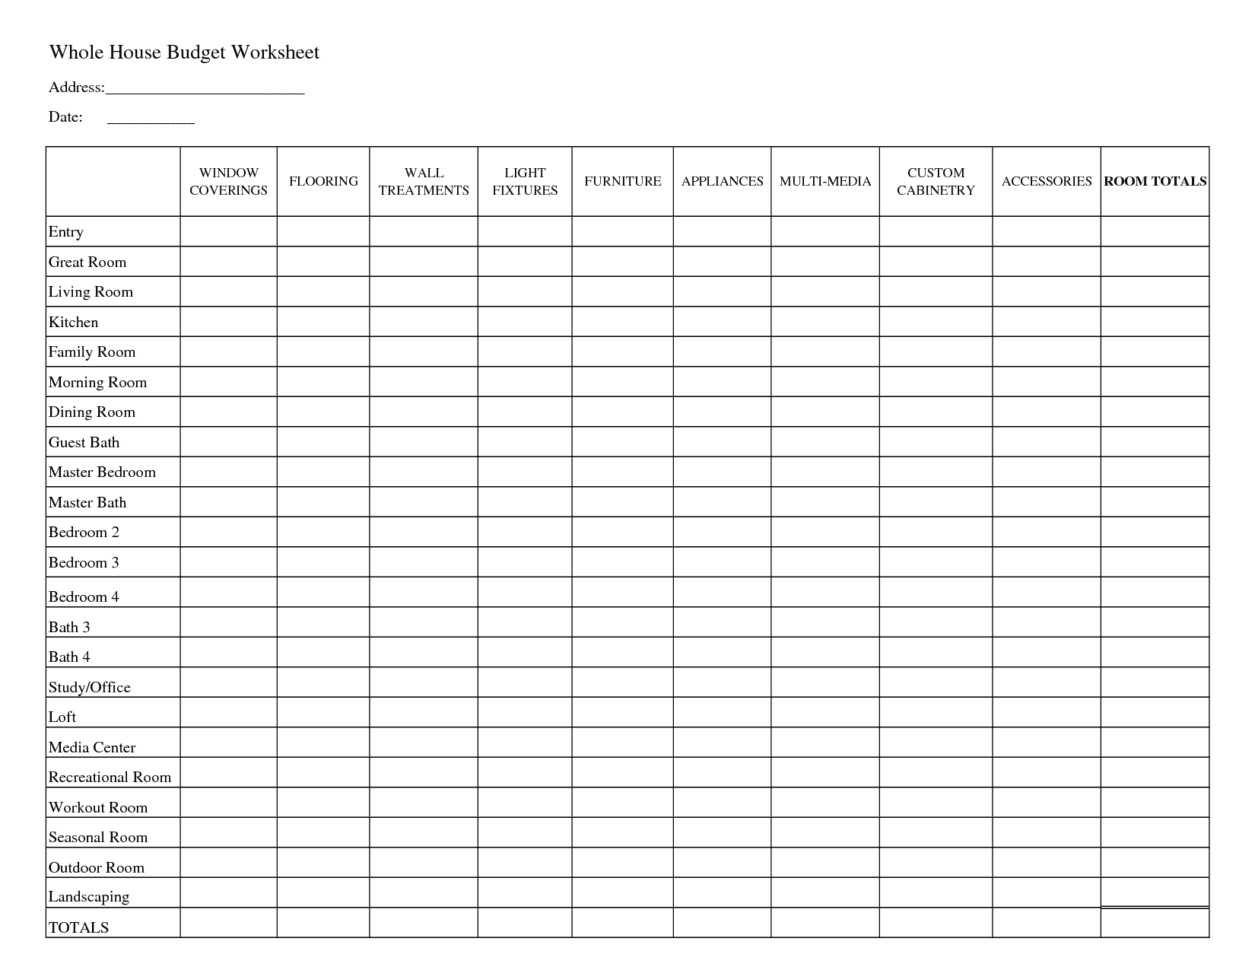 Easy Budget Spreadsheet Free Monthly Budget Spreadsheet Excel Monthly Budget Template Simple Budget Template Household Budget Template Excel Free Budget Templates For Excel Free Monthly Budget Spreadsheet Template  Easy Budget Spreadsheet Template Budget Spreadsheet Spreadsheet Templates for Busines